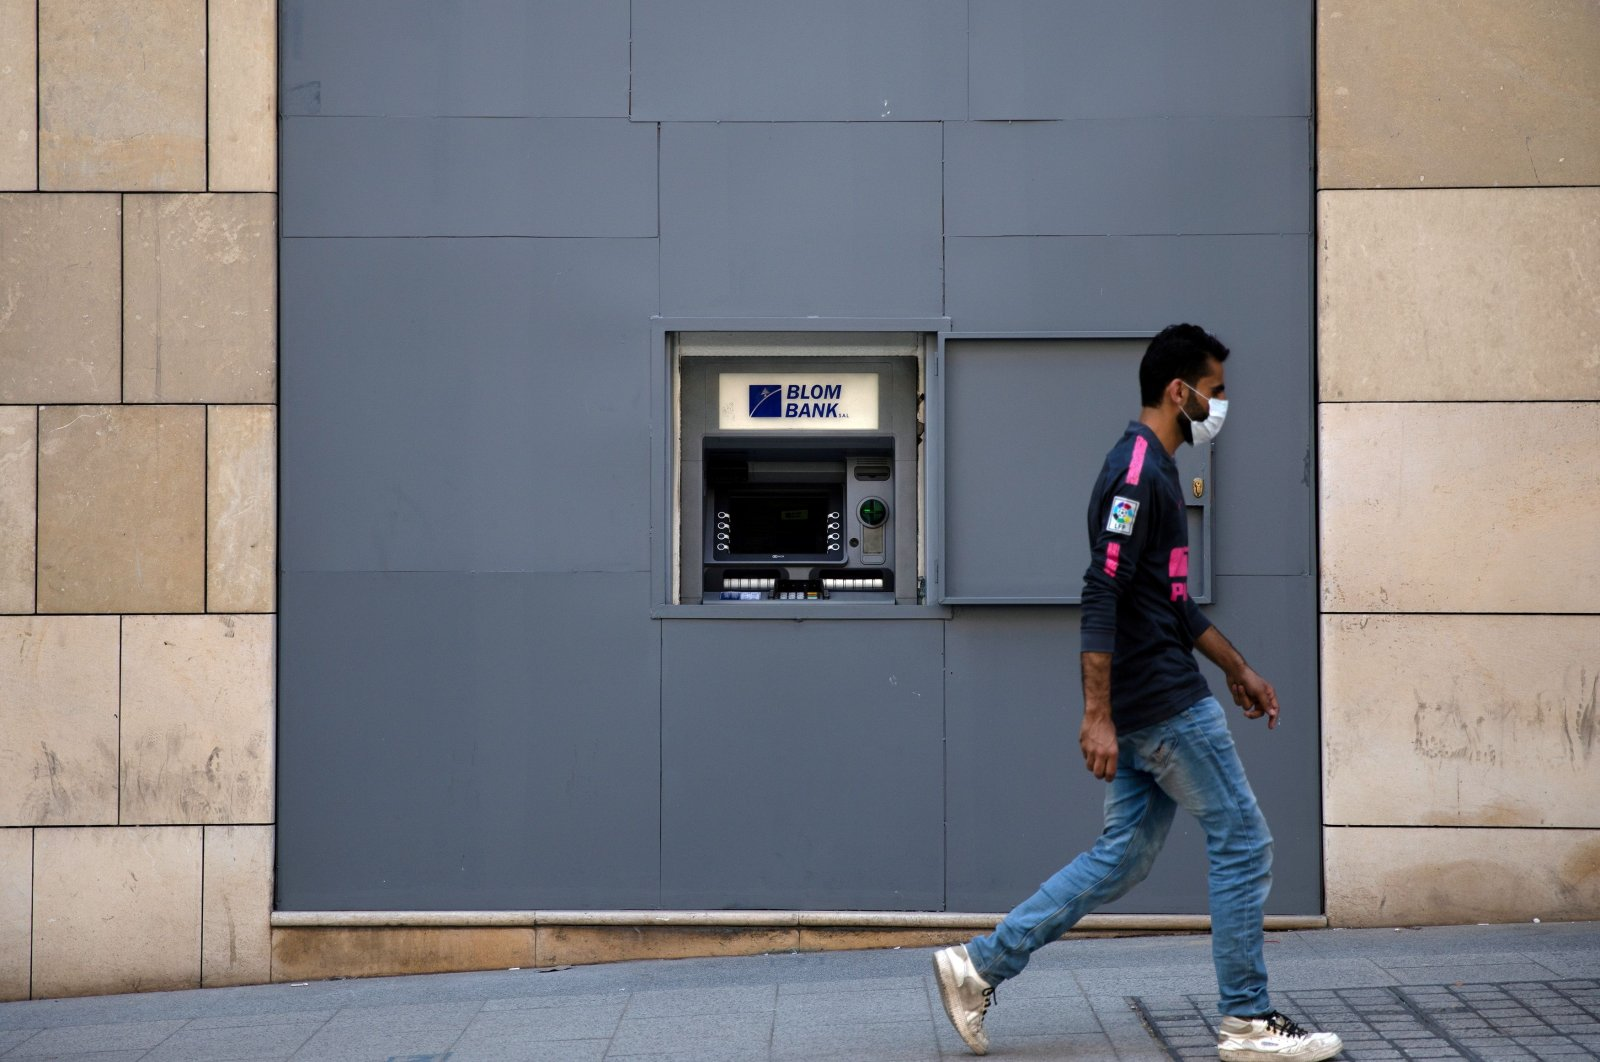 A man wearing a face mask walks past a fortified Blom Bank ATM machine, in Beirut, Lebanon, Aug. 21, 2020. (Rueters Photo)